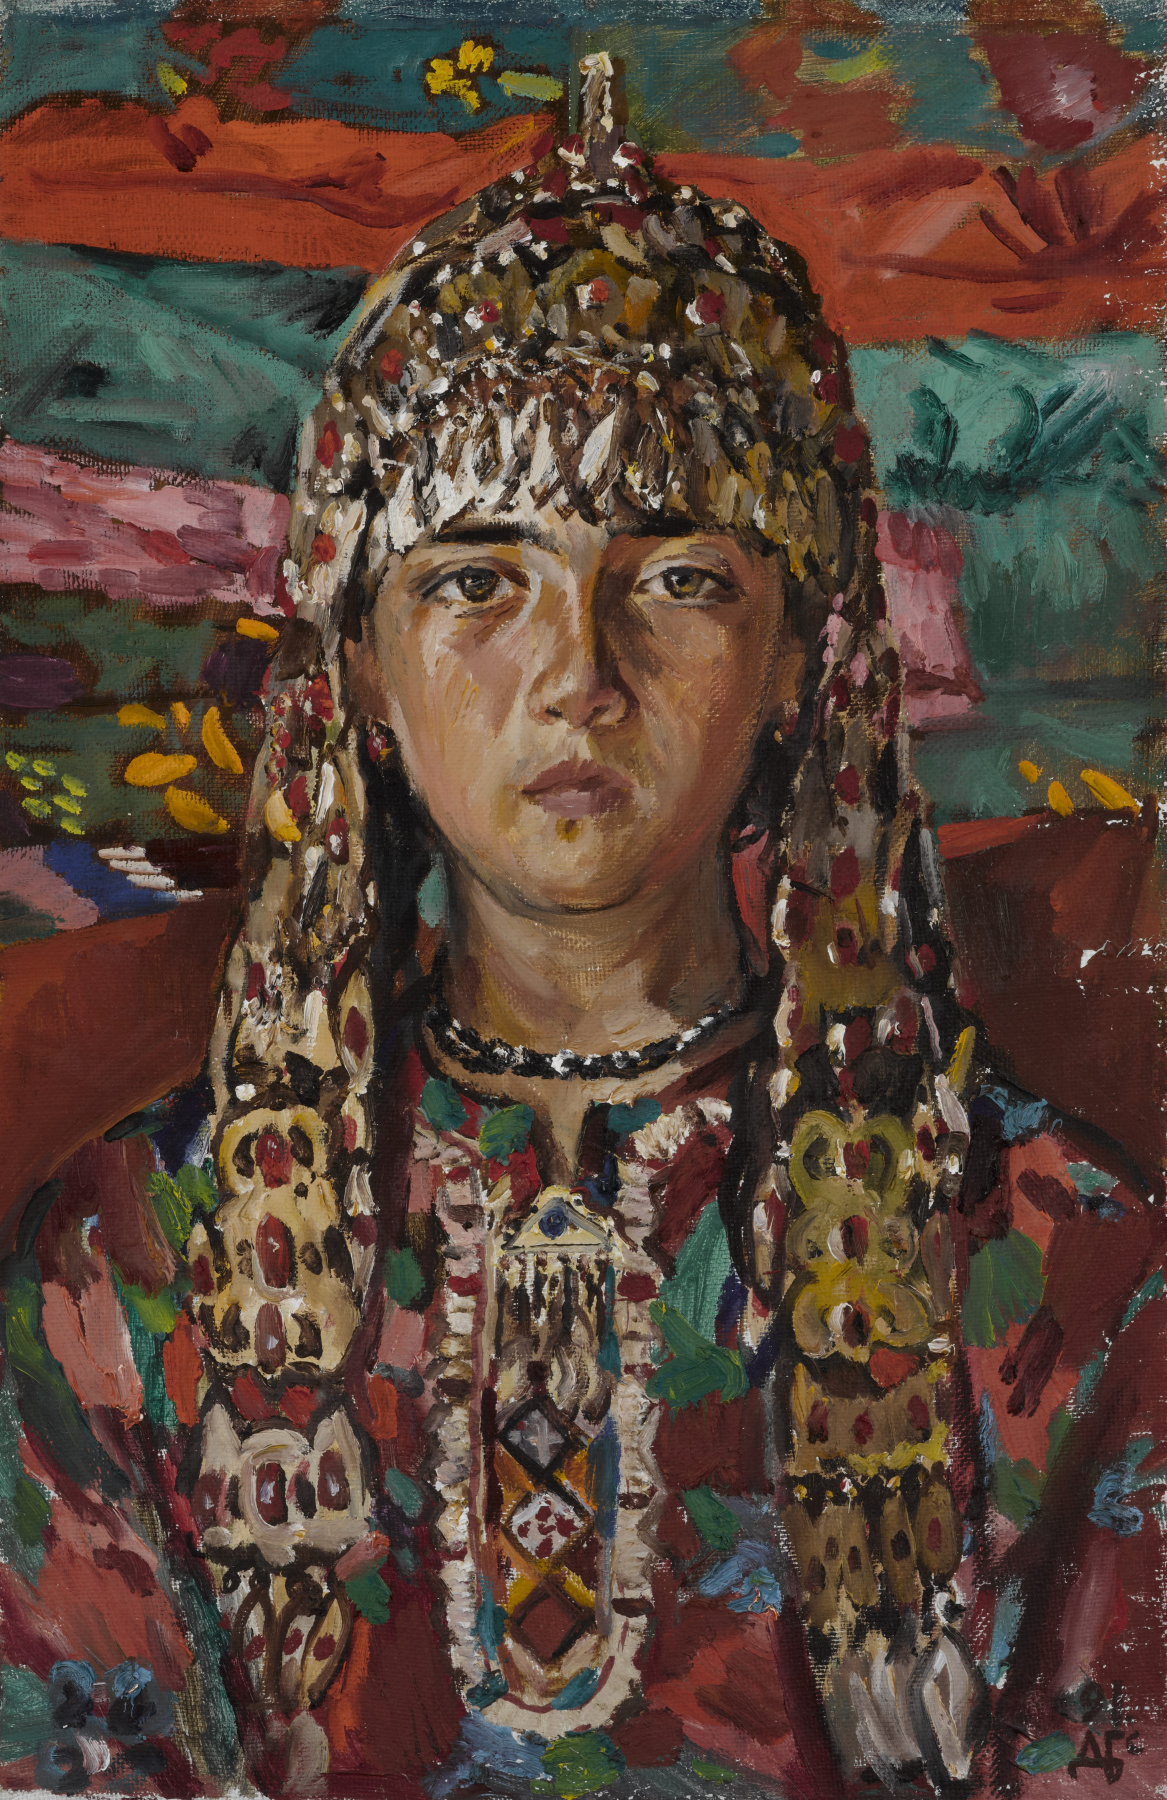 Дурды Байрамович Байрамов. Portrait of Mergen. A girl with Turkmen ornaments.